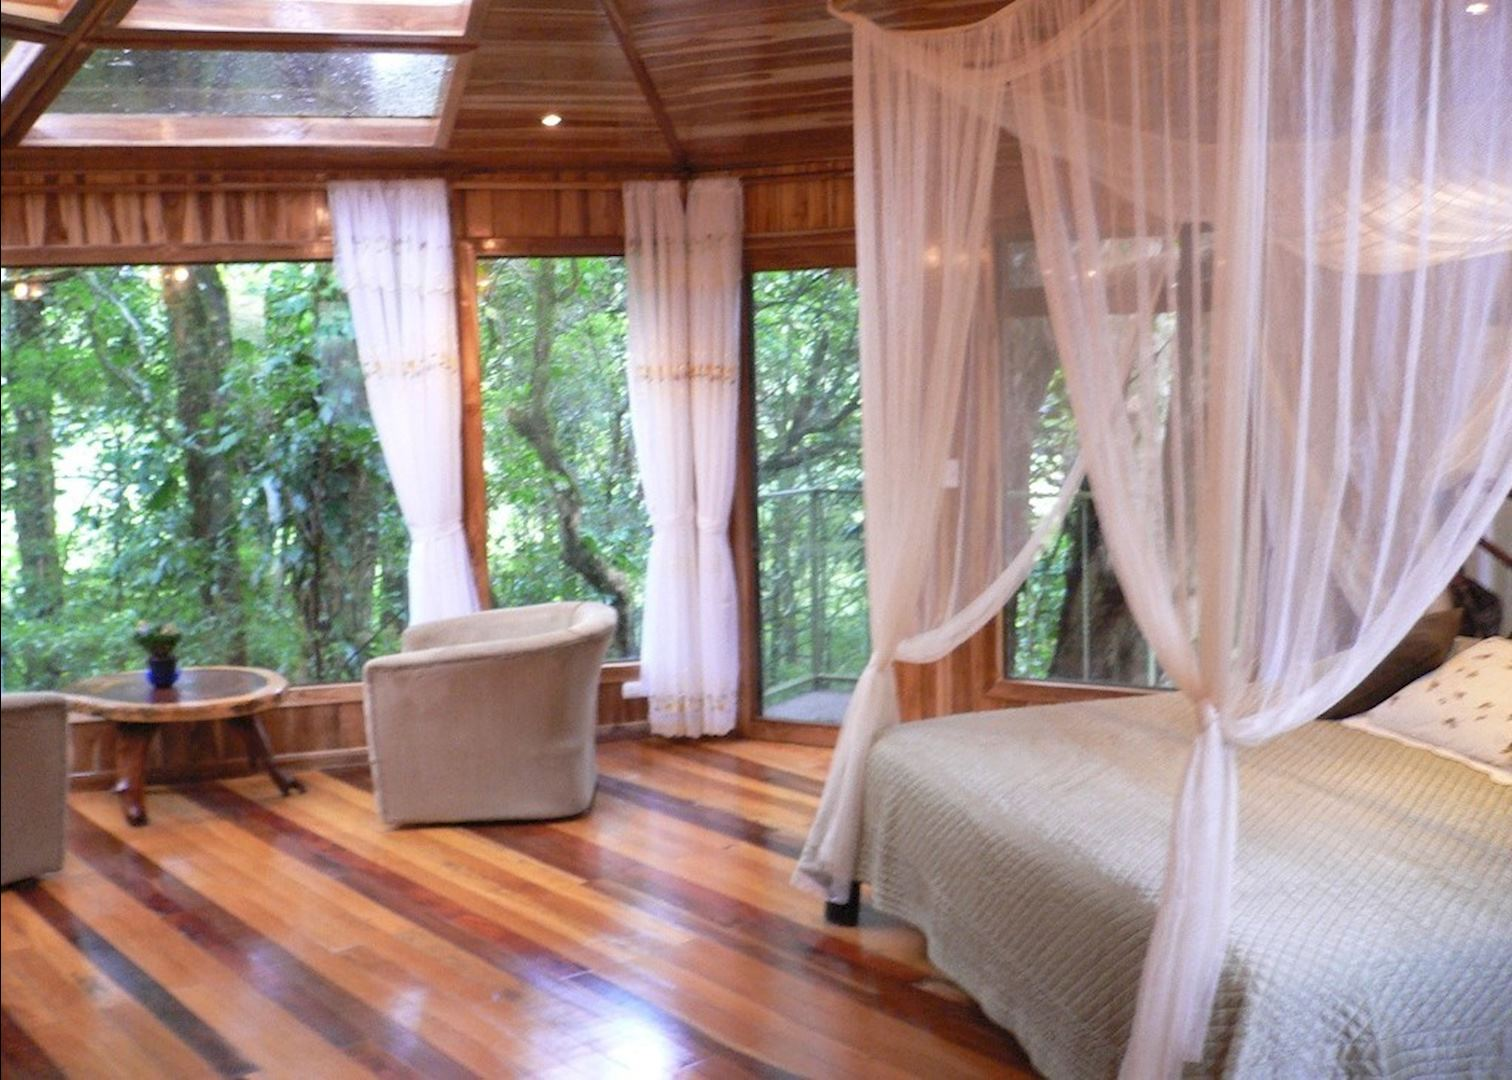 Glade Chalet Hidden Canopy Treehouse & Hidden Canopy Treehouse | Audley Travel